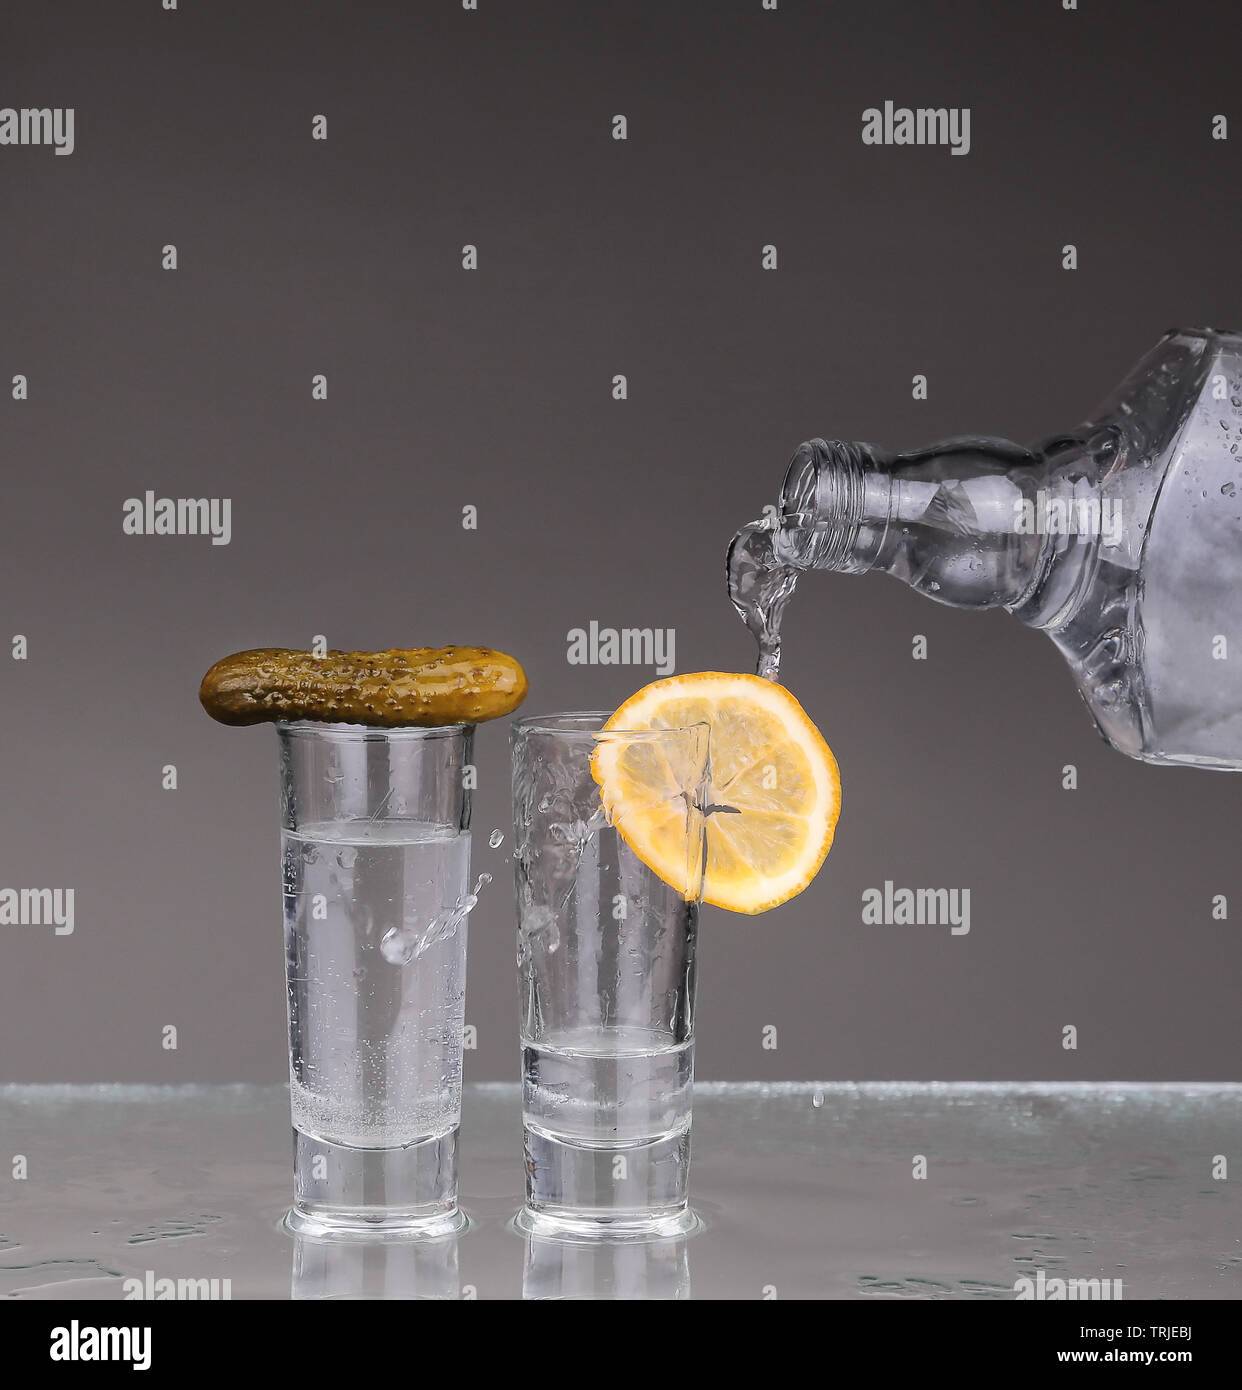 Vodka poured into a glass - Stock Image